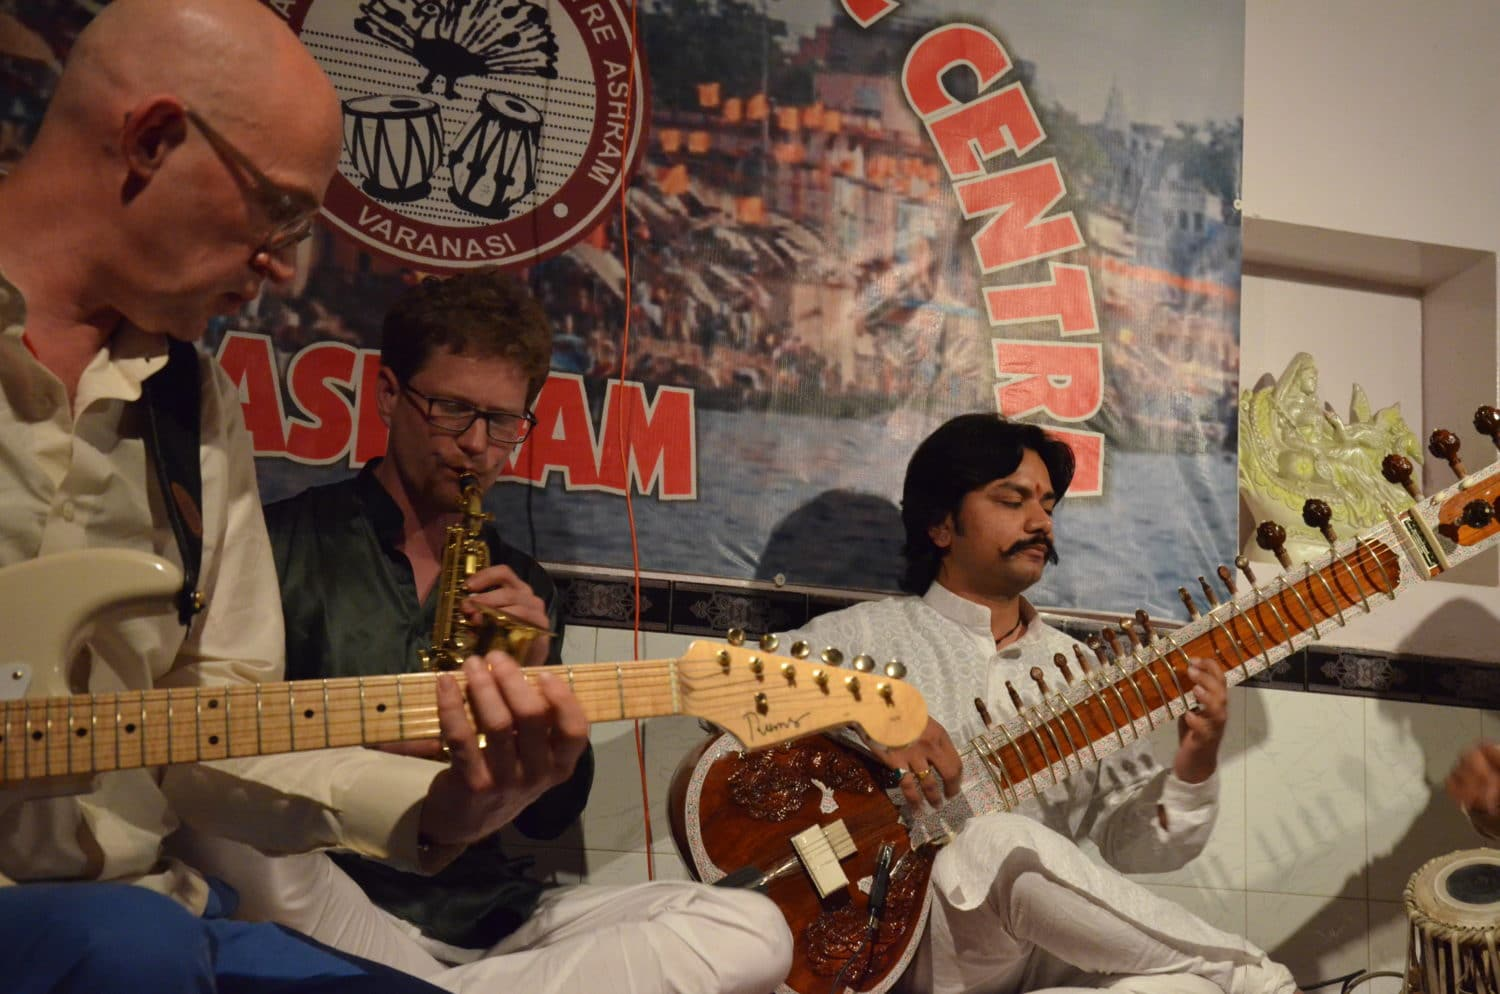 Peter Hinz, Steffen Dix, Martin Lejeune, Sandip Kewale, Shyam Rastogi, International Music Center Ashram, Varansi, India